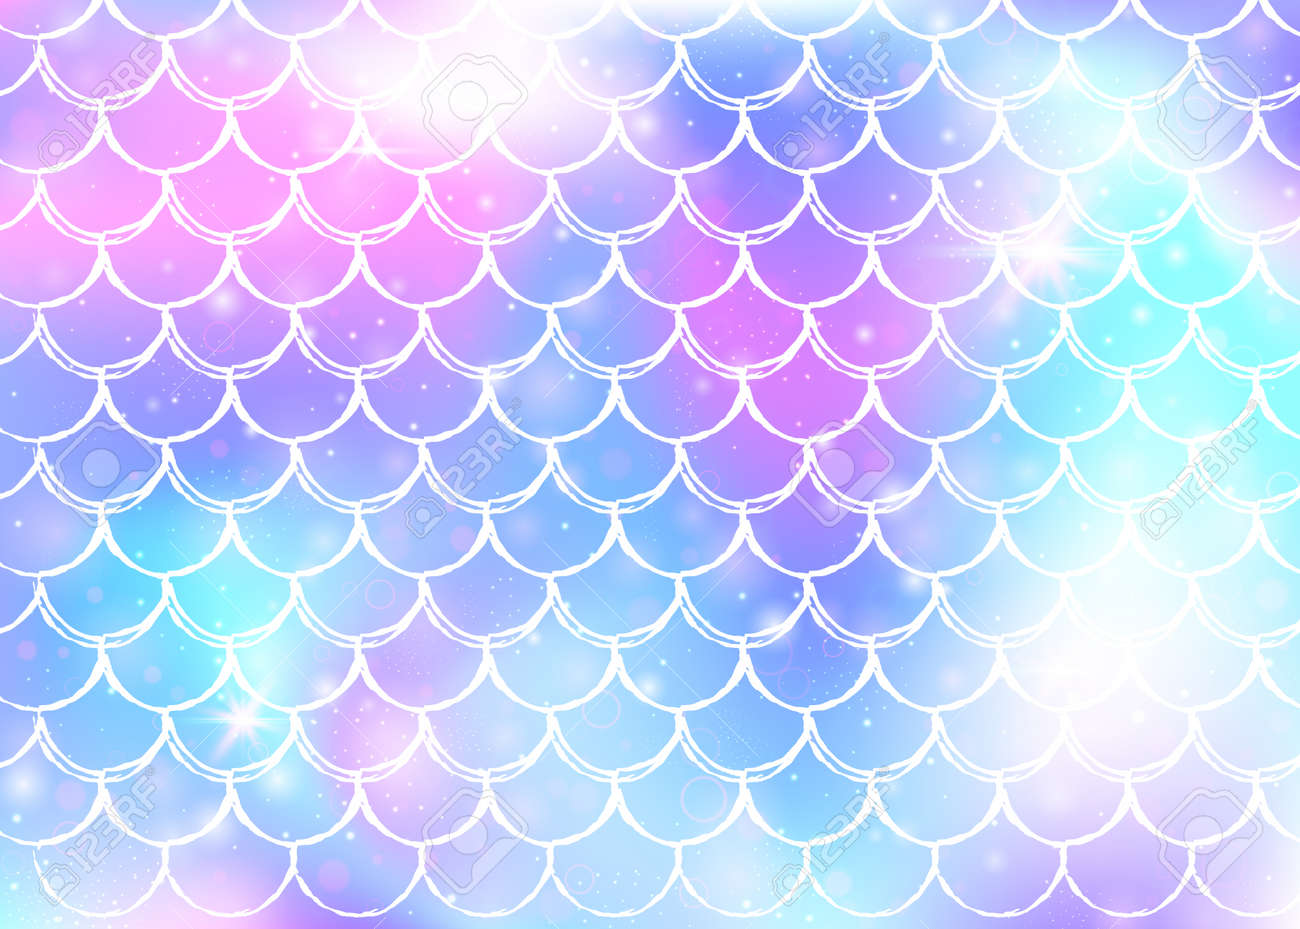 Princess Mermaid Background With Kawaii Rainbow Scales Pattern Royalty Free Cliparts Vectors And Stock Illustration Image 111585853